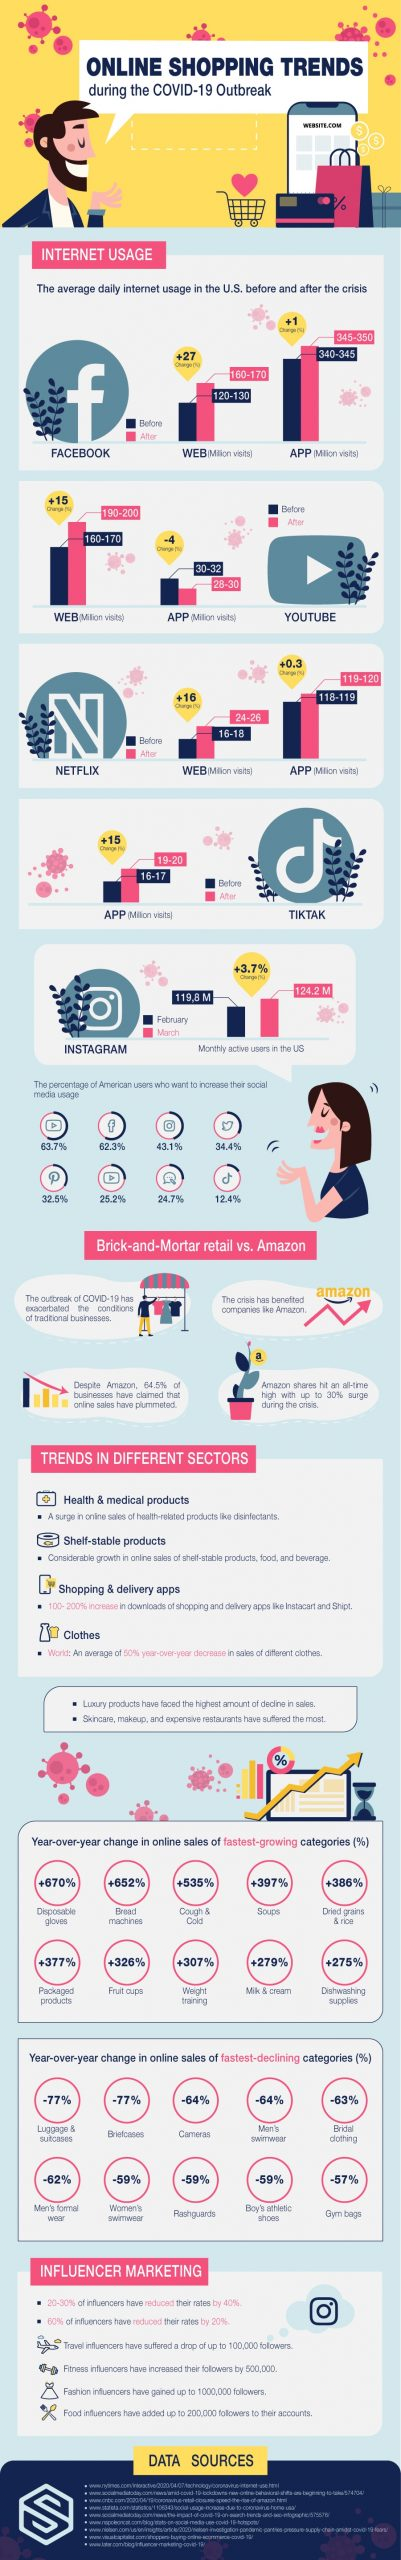 Online Shopping Trends During the COVID-19 Pandemic [Infographic]